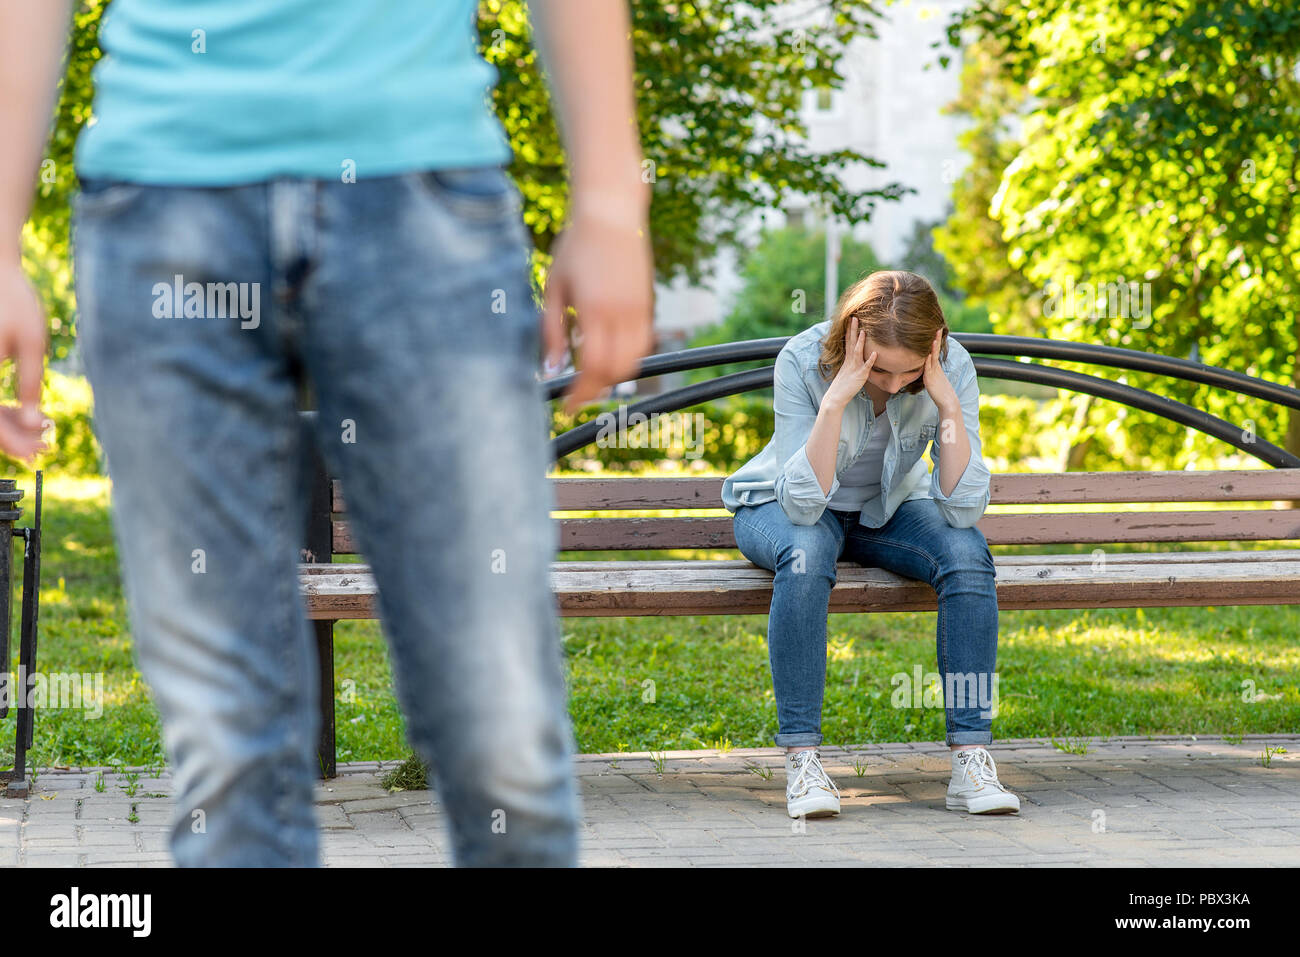 The girl is crying on bench. In the summer in the park in nature. The young man leaves her. Frustration is a mistrust. Problems in the family break the relationship. - Stock Image